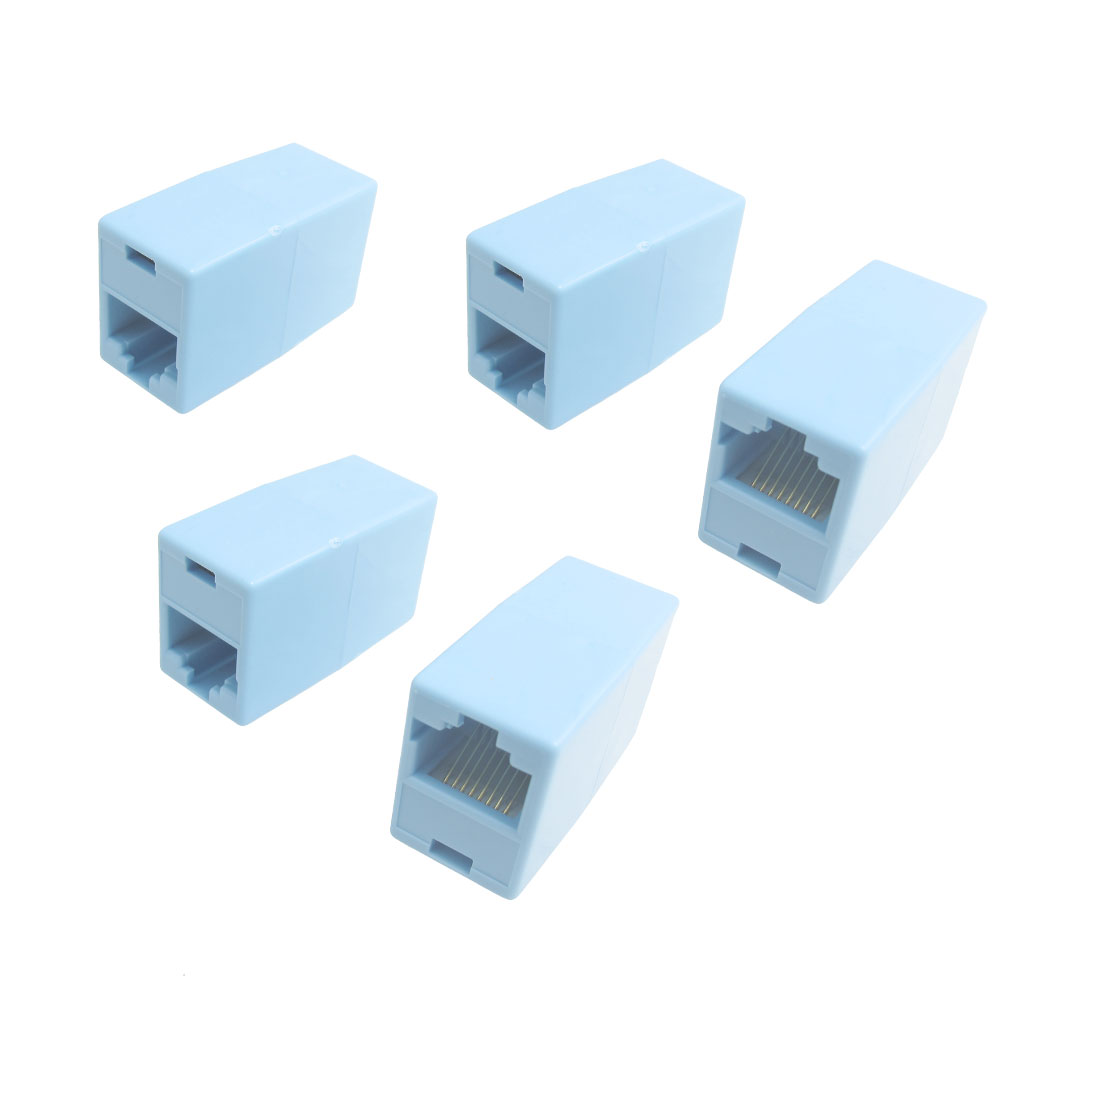 5 Pcs RJ45 F/F LAN Network Inline Splitter Connector